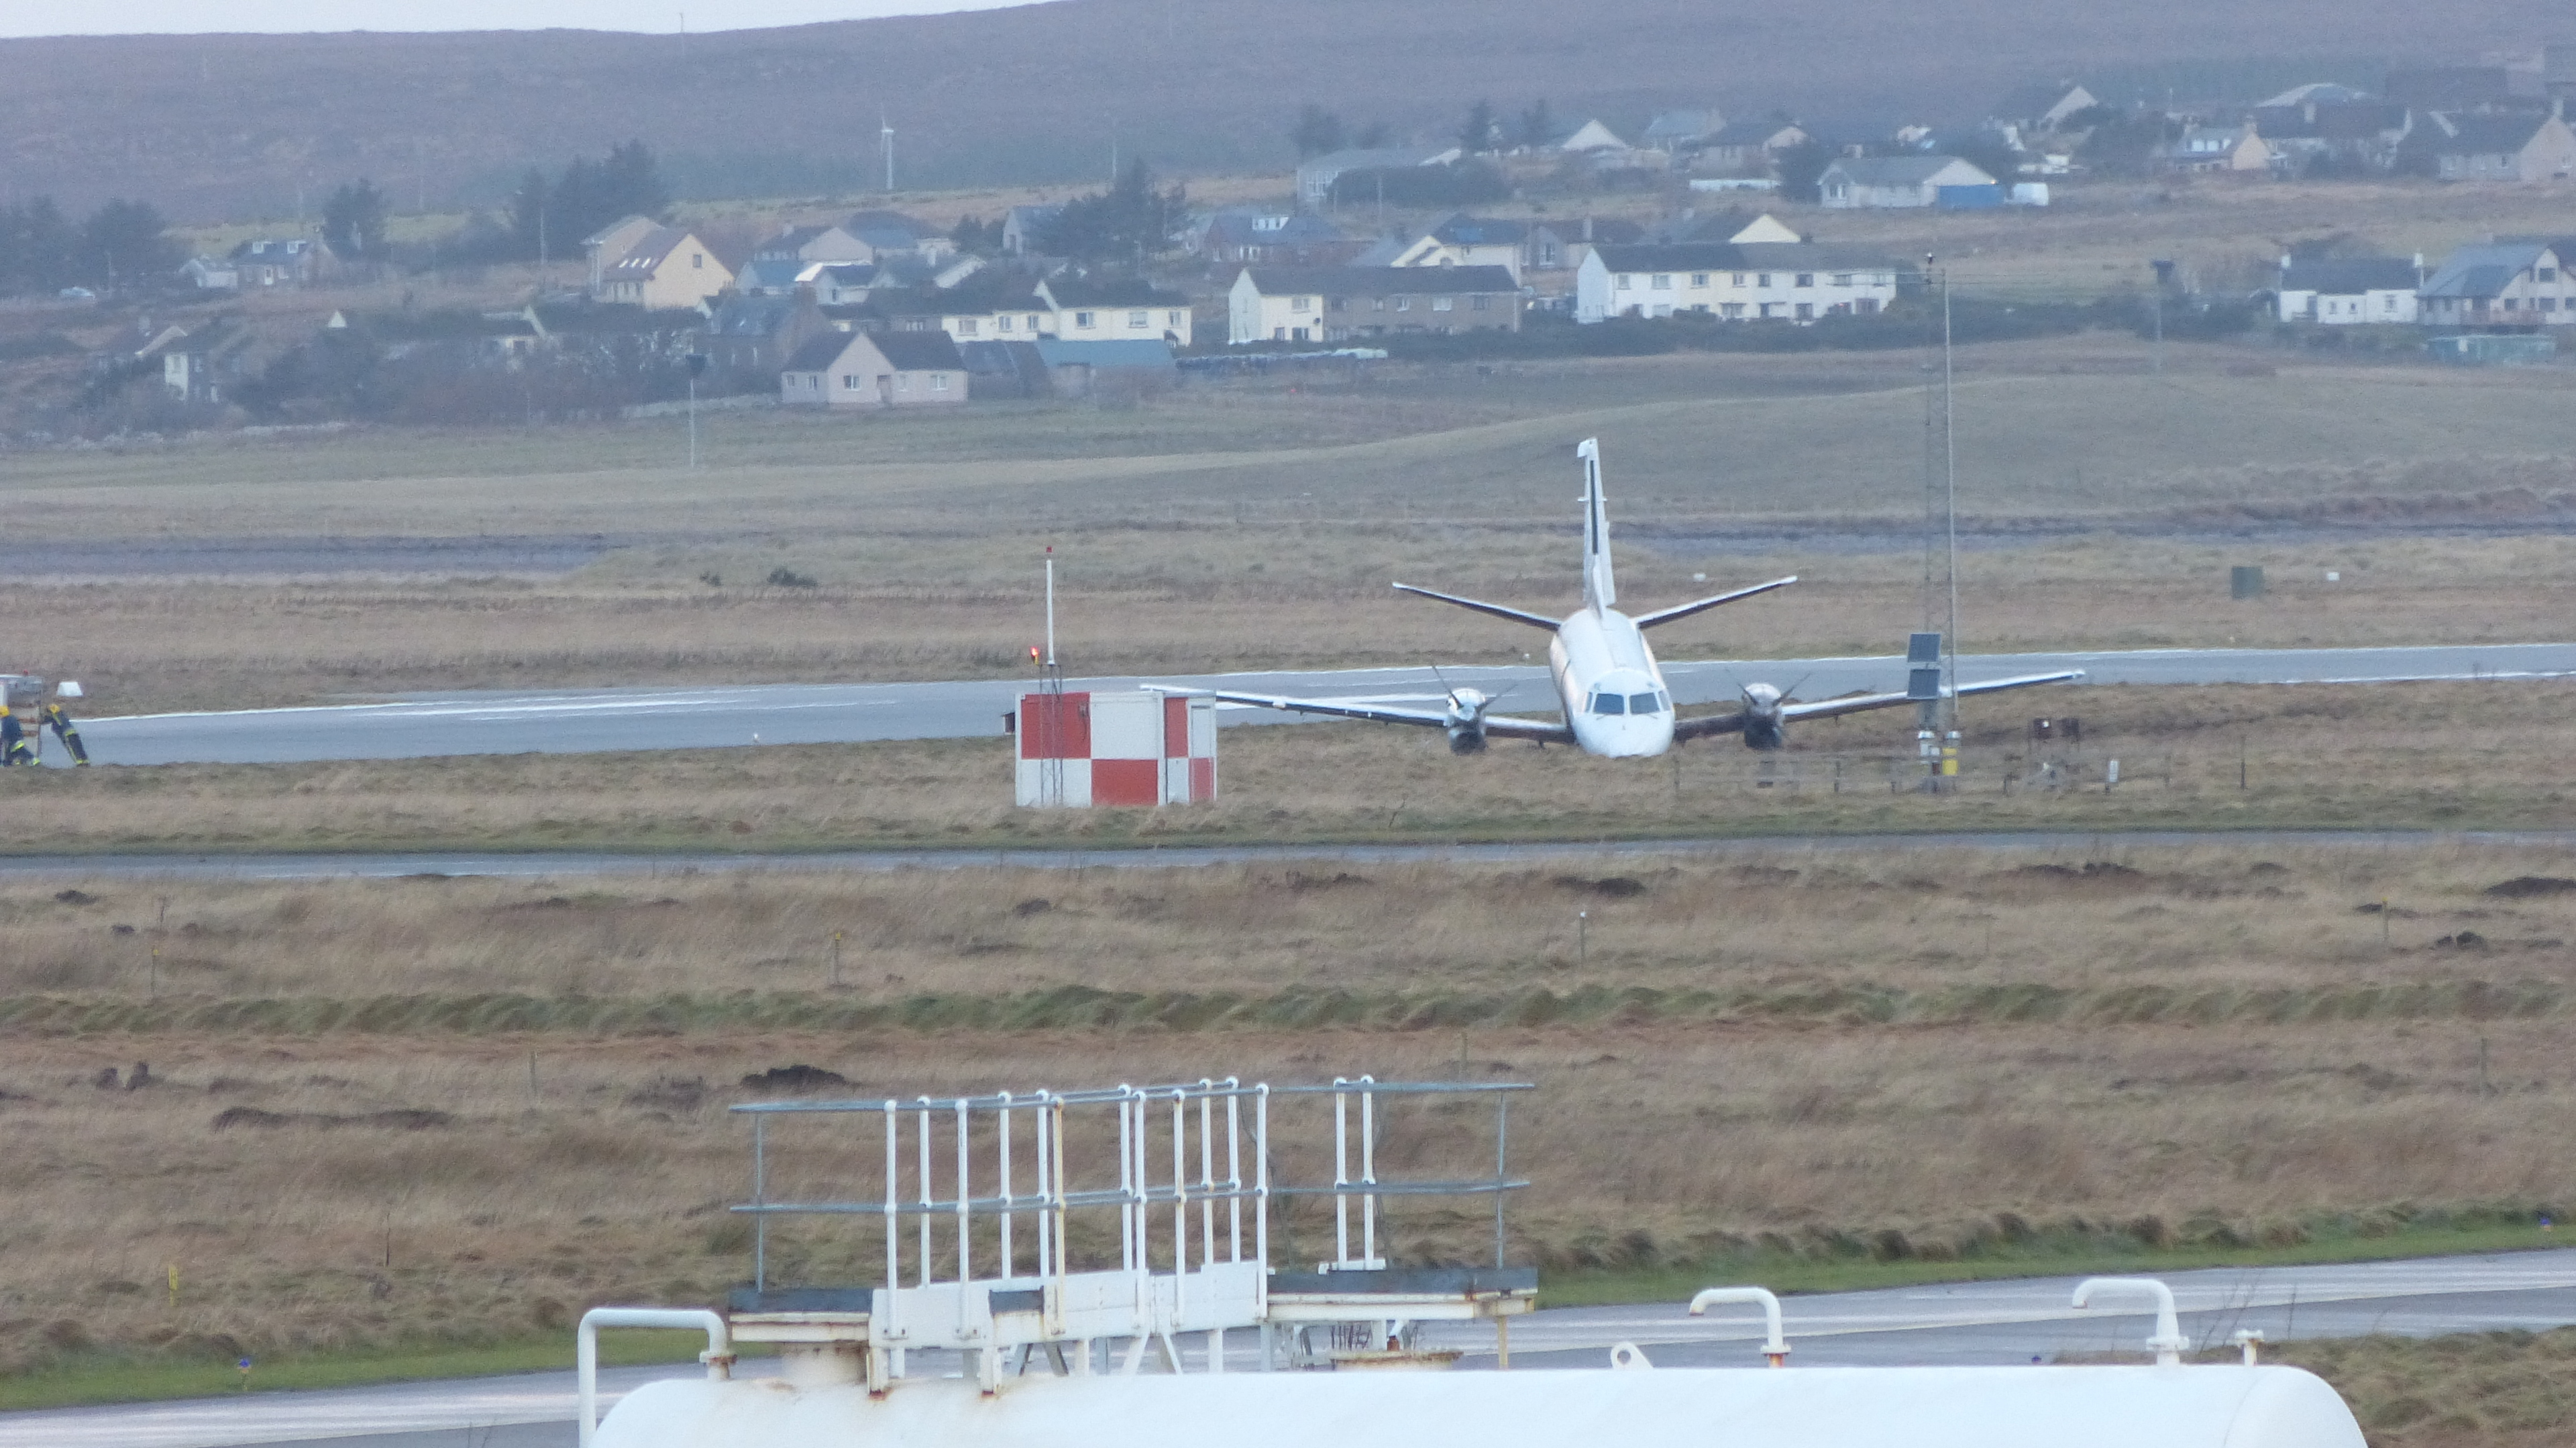 The scene at Stornoway Airport